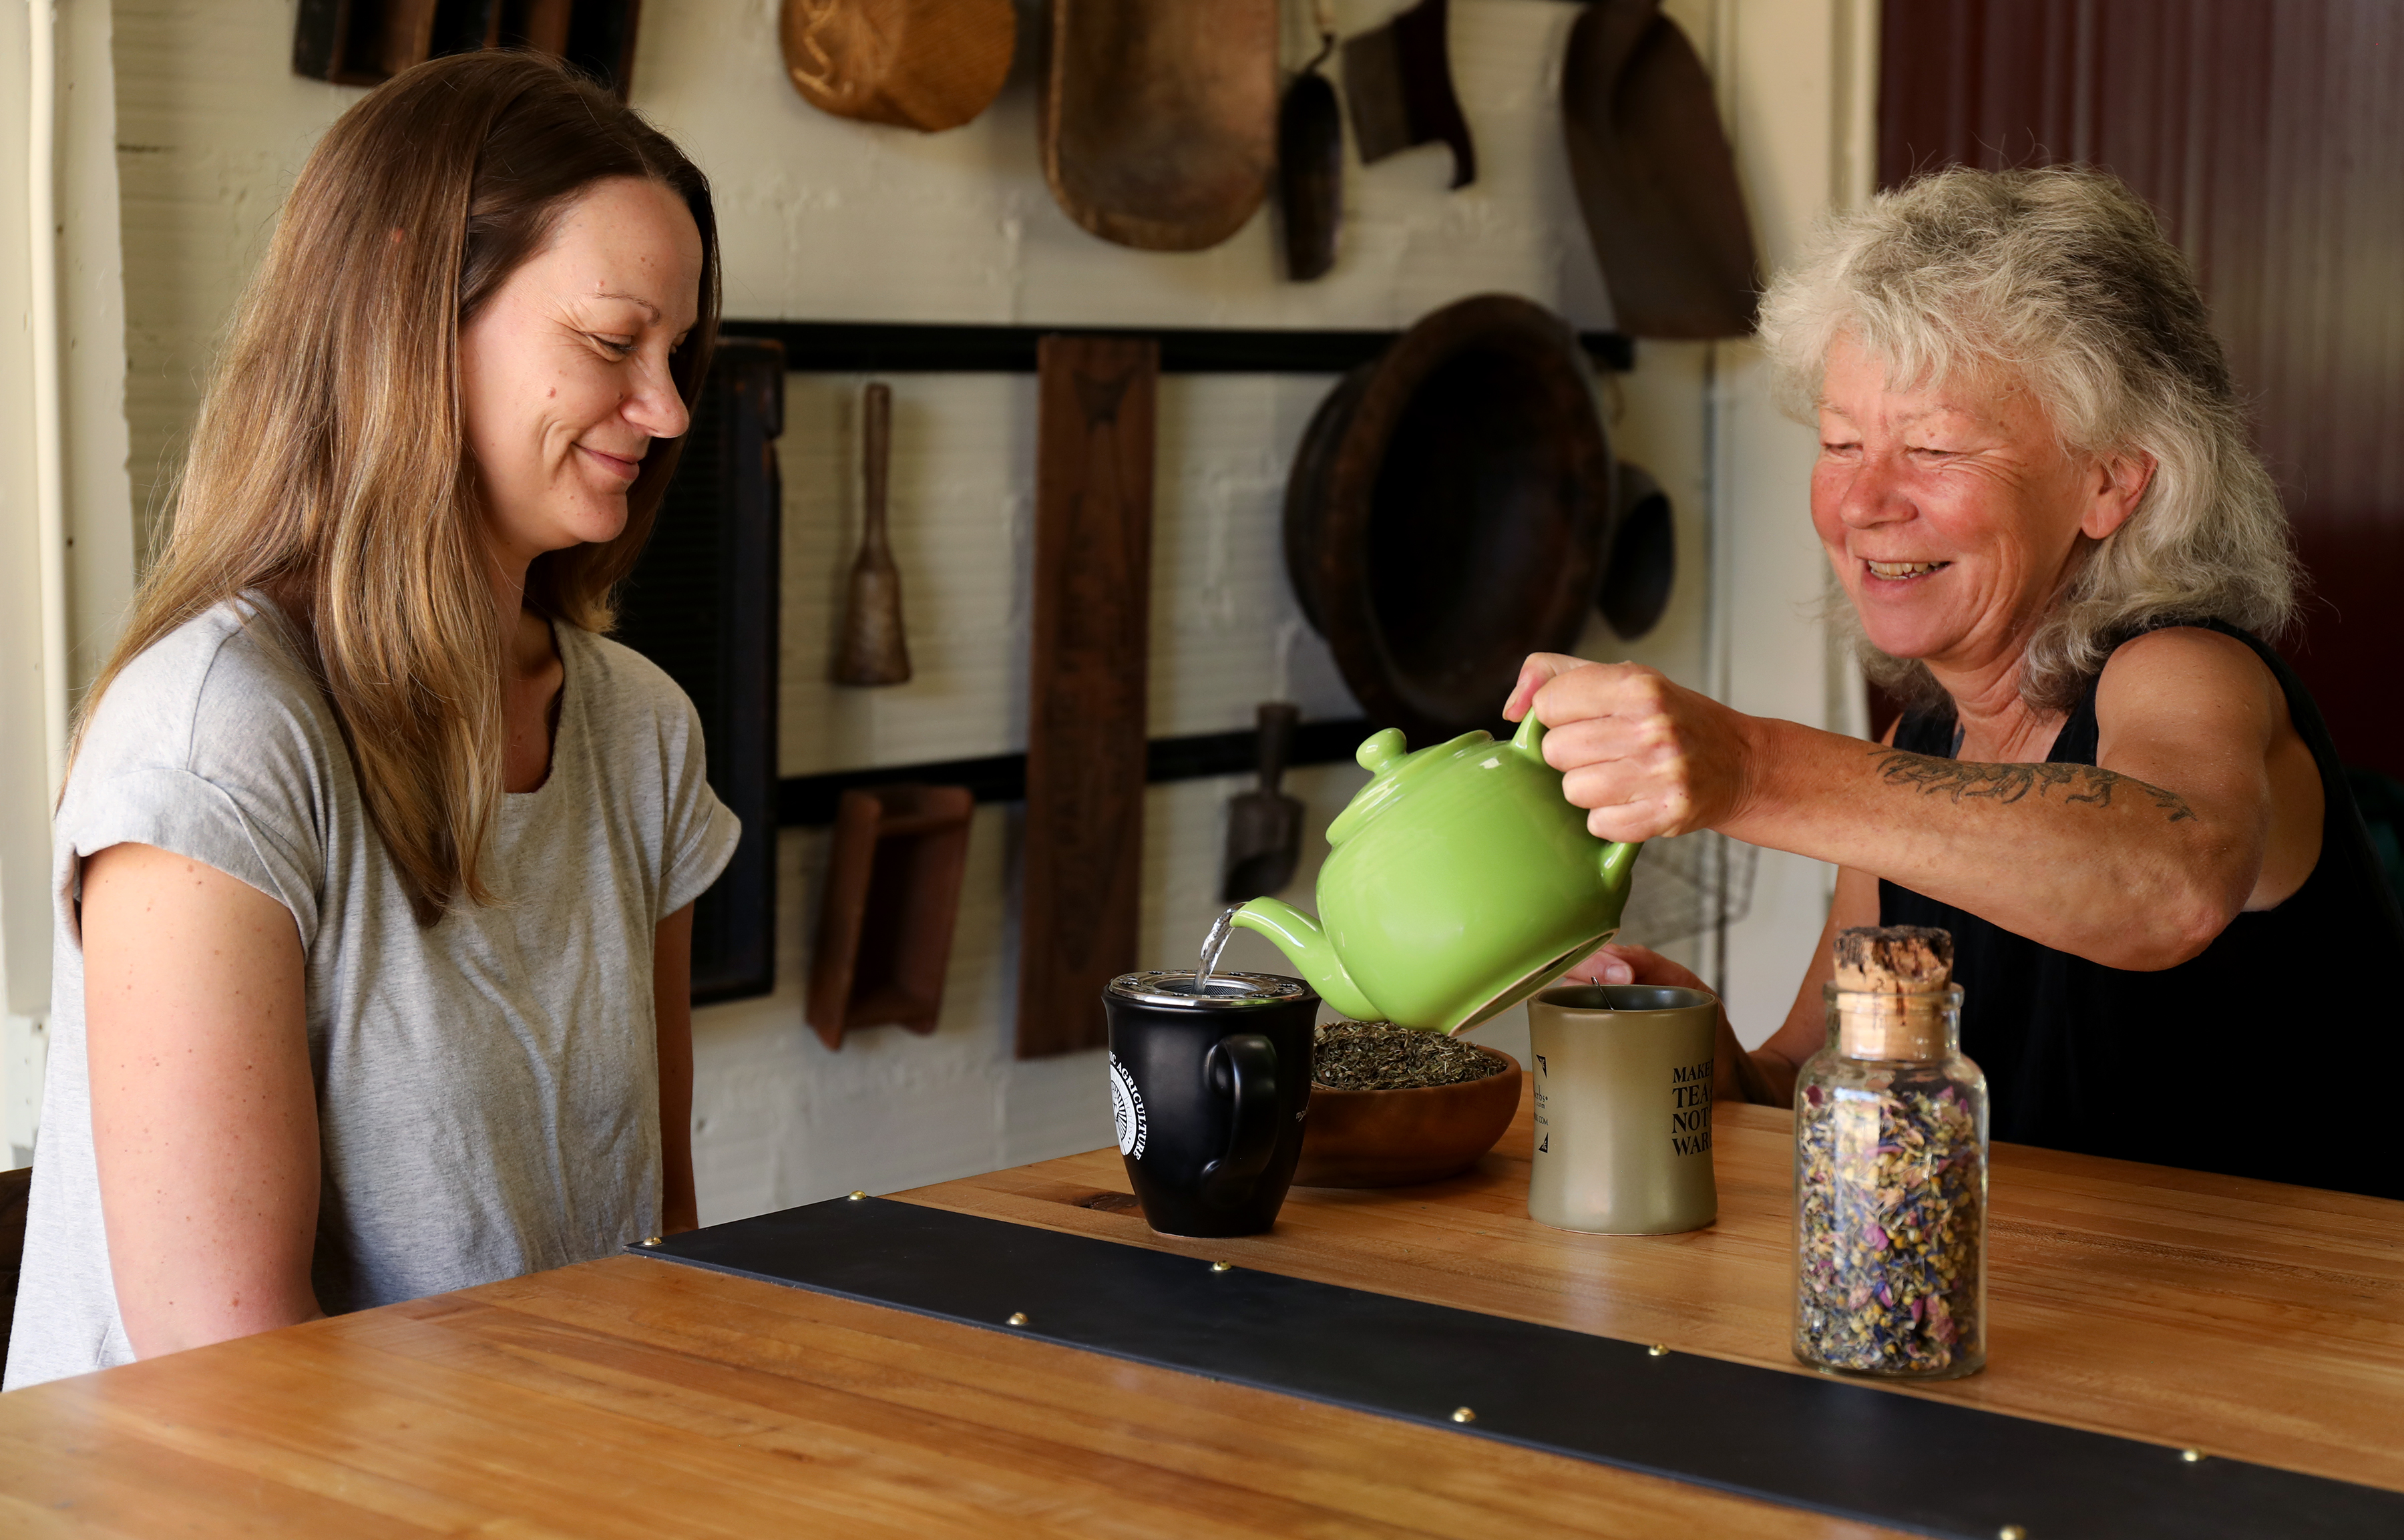 Co-owner Julie Bailey pours production manager Julie DeBord a cup of peace tea blend from Mountain Rose Herbs.